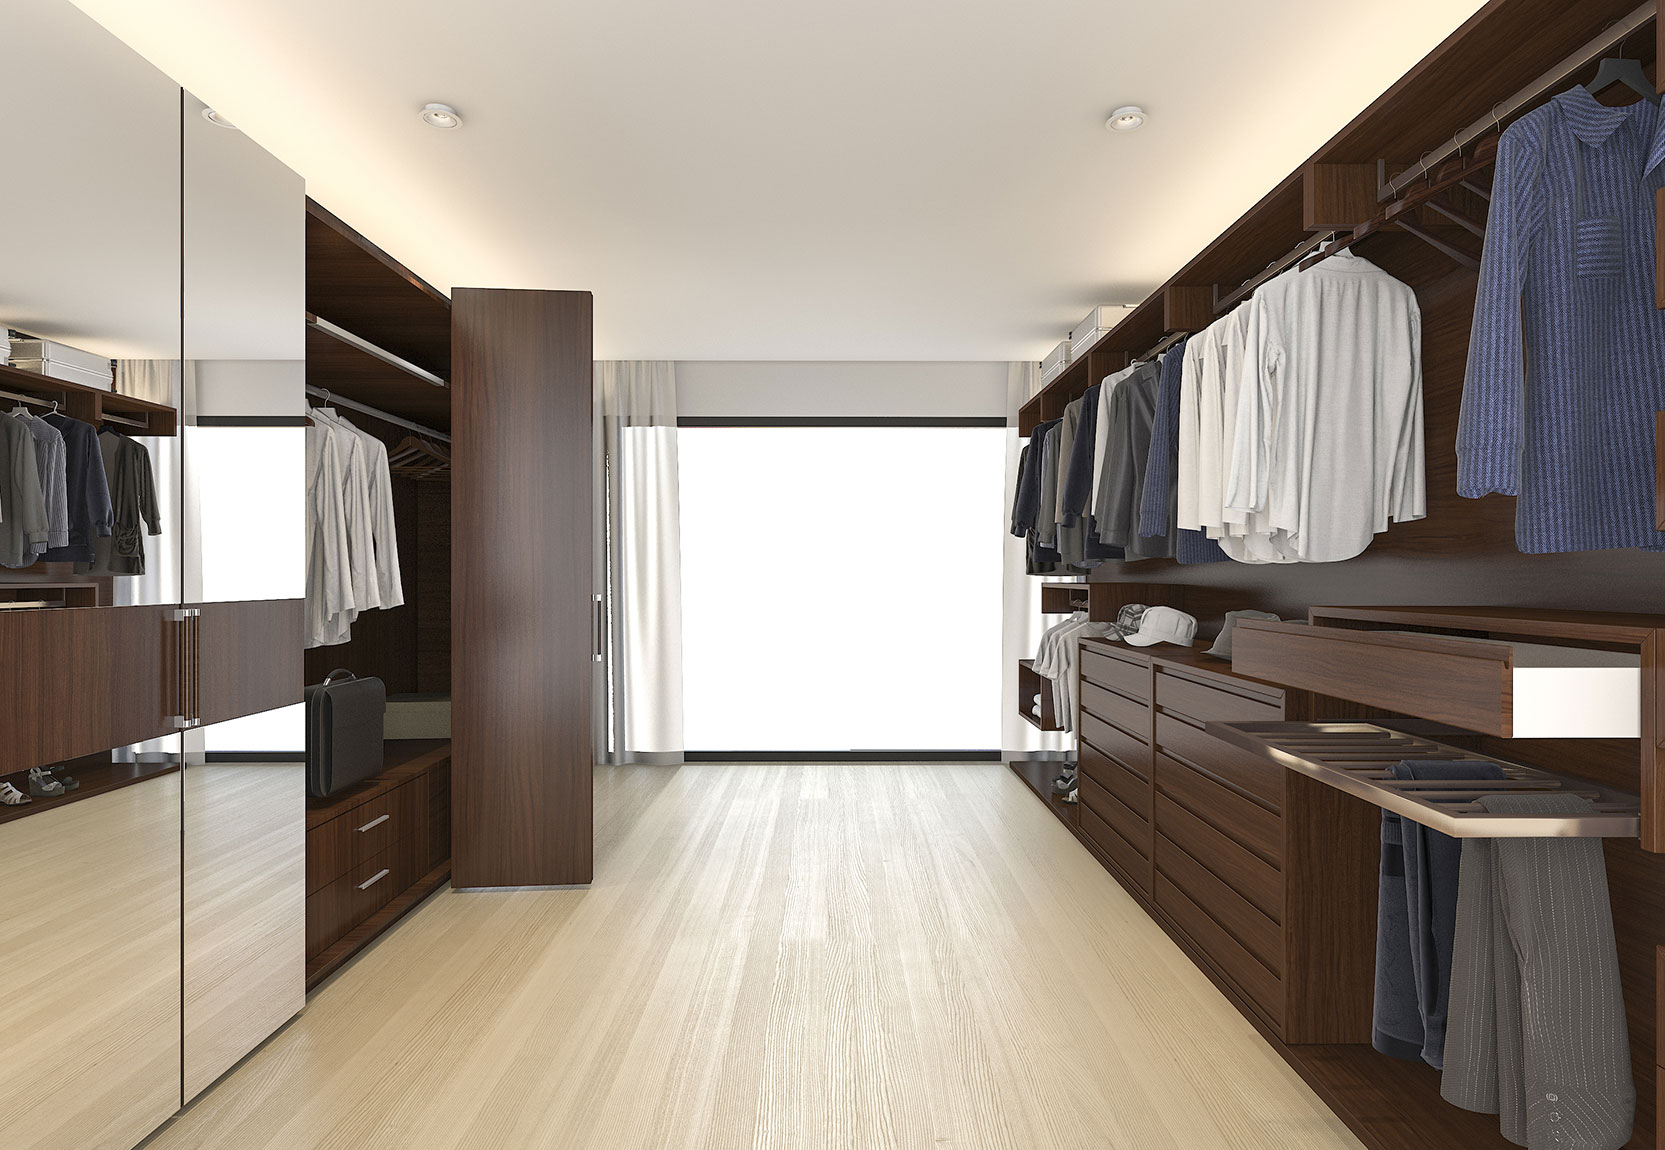 Wardrobes Designs for Bedrooms in Indian – Consider These Ideas